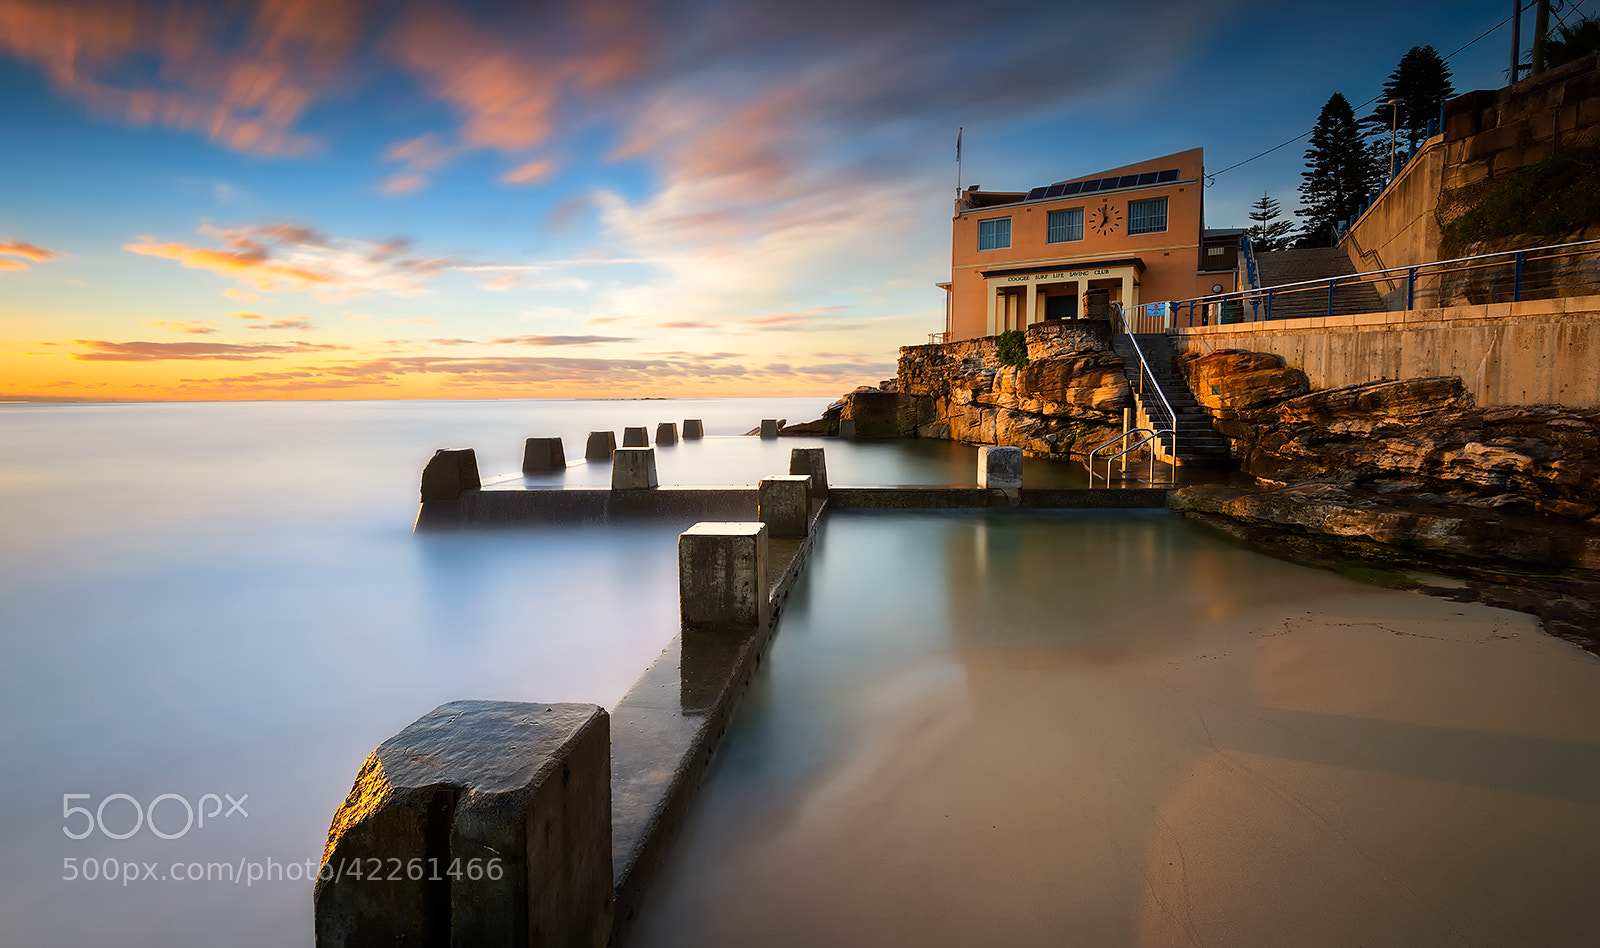 Photograph Coogee pool by Goff Kitsawad on 500px